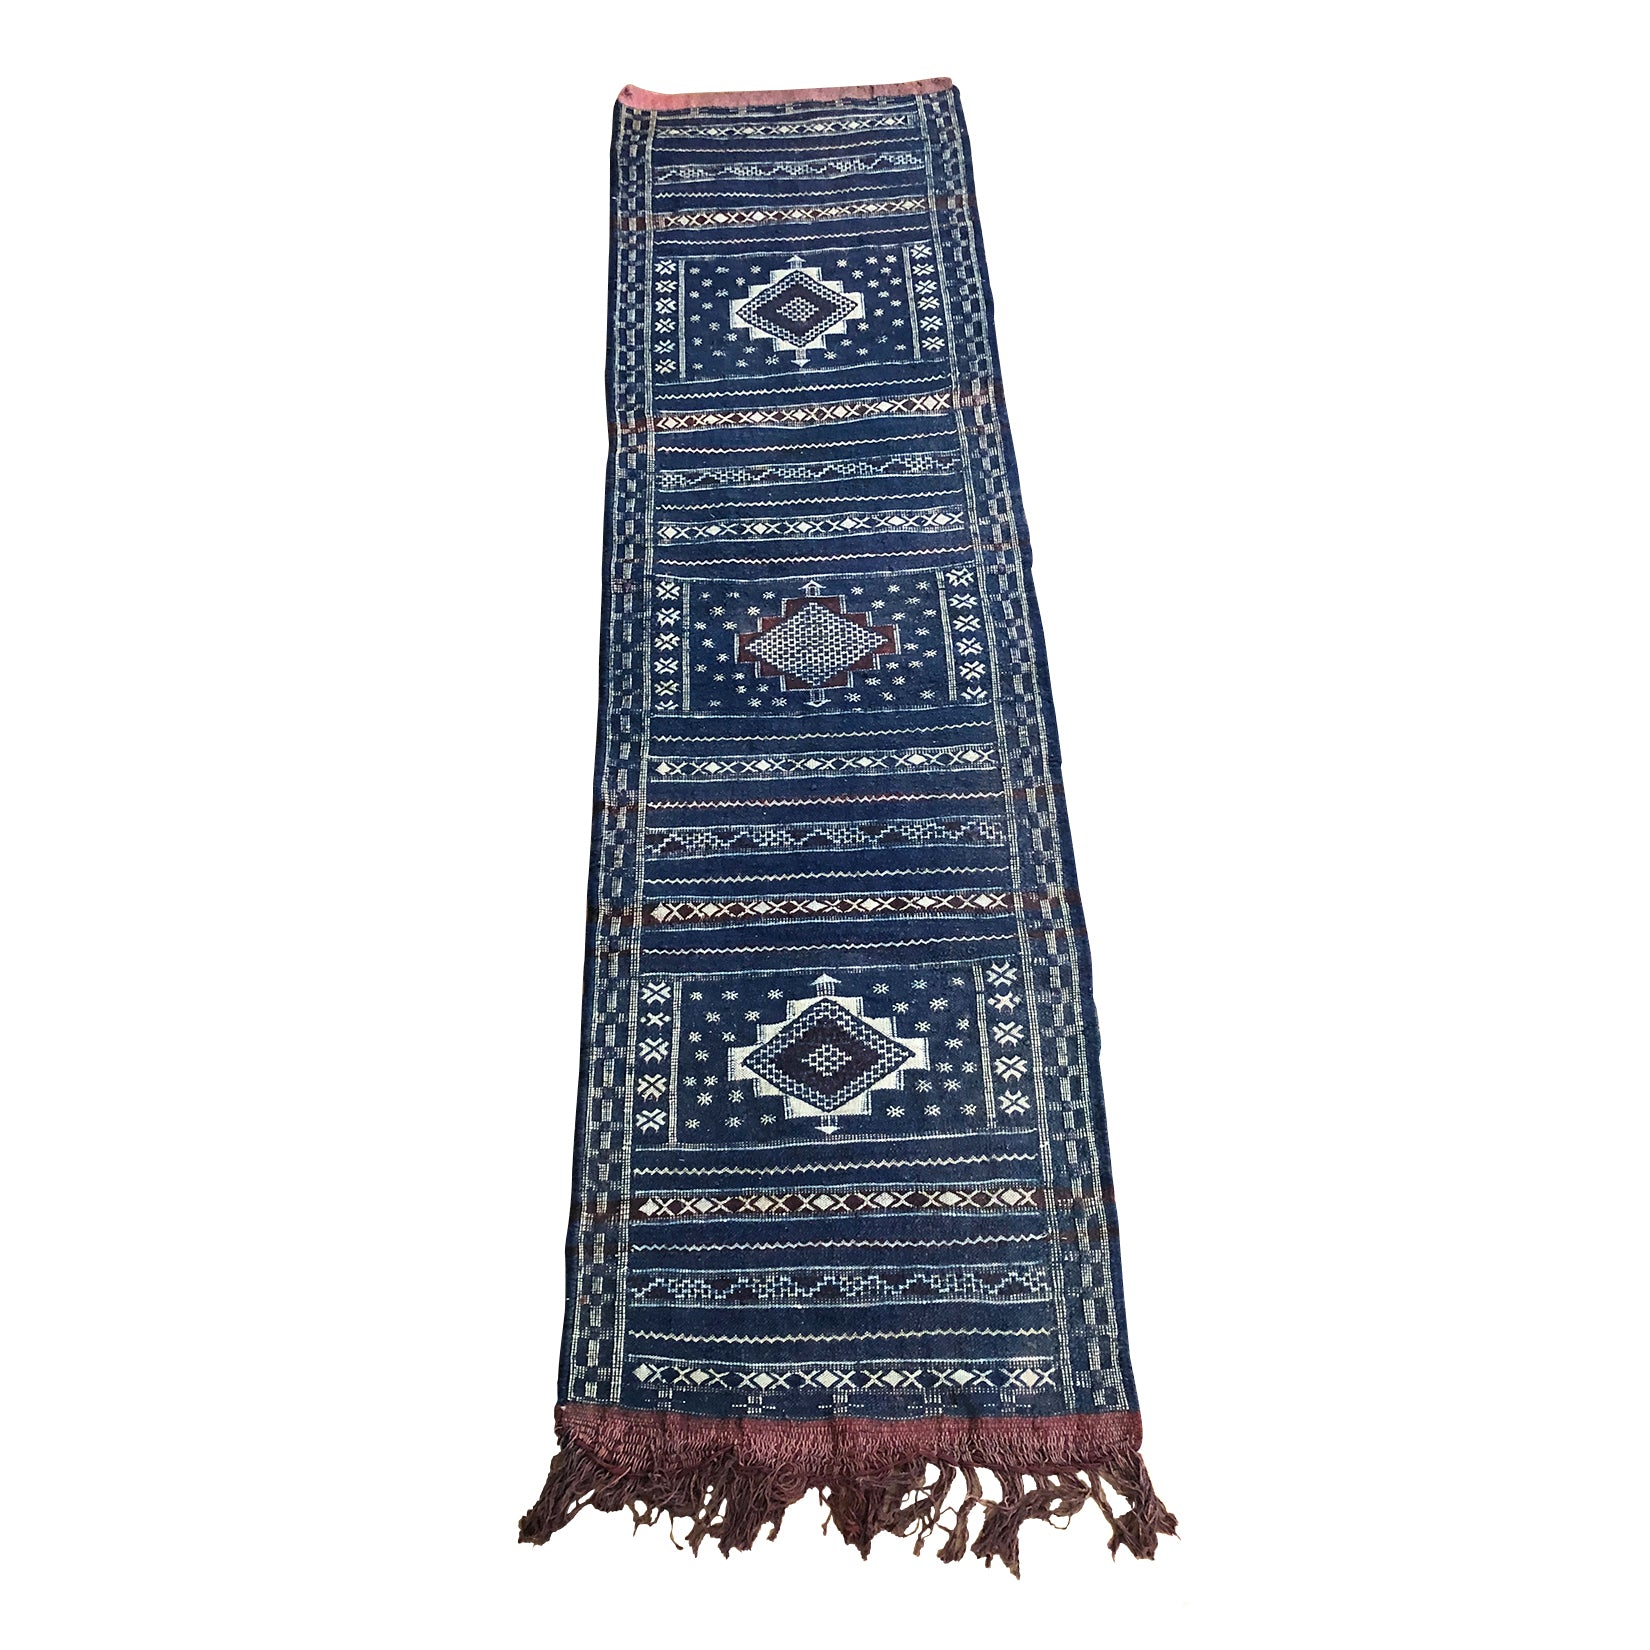 MARWA - Ait Ouaouzguite Moroccan runner - Kantara | Moroccan Rugs